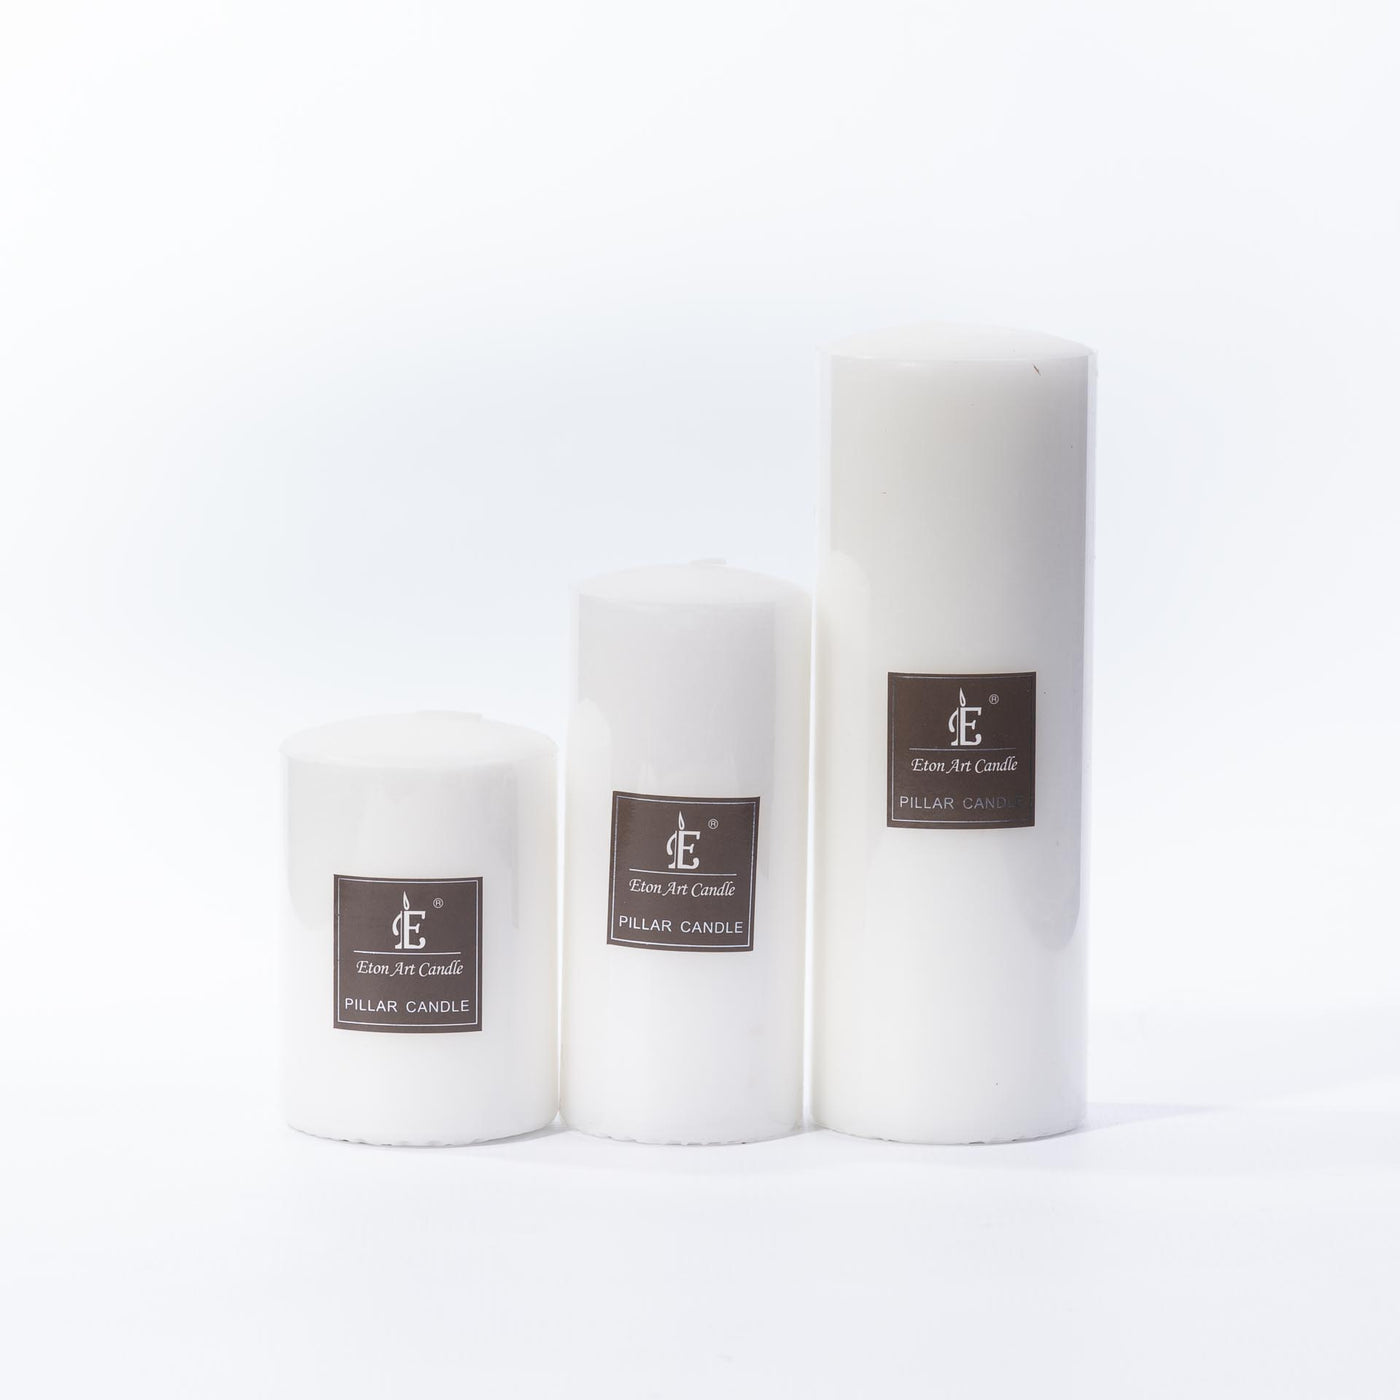 White Pillar Candle - 10cm x 6cm